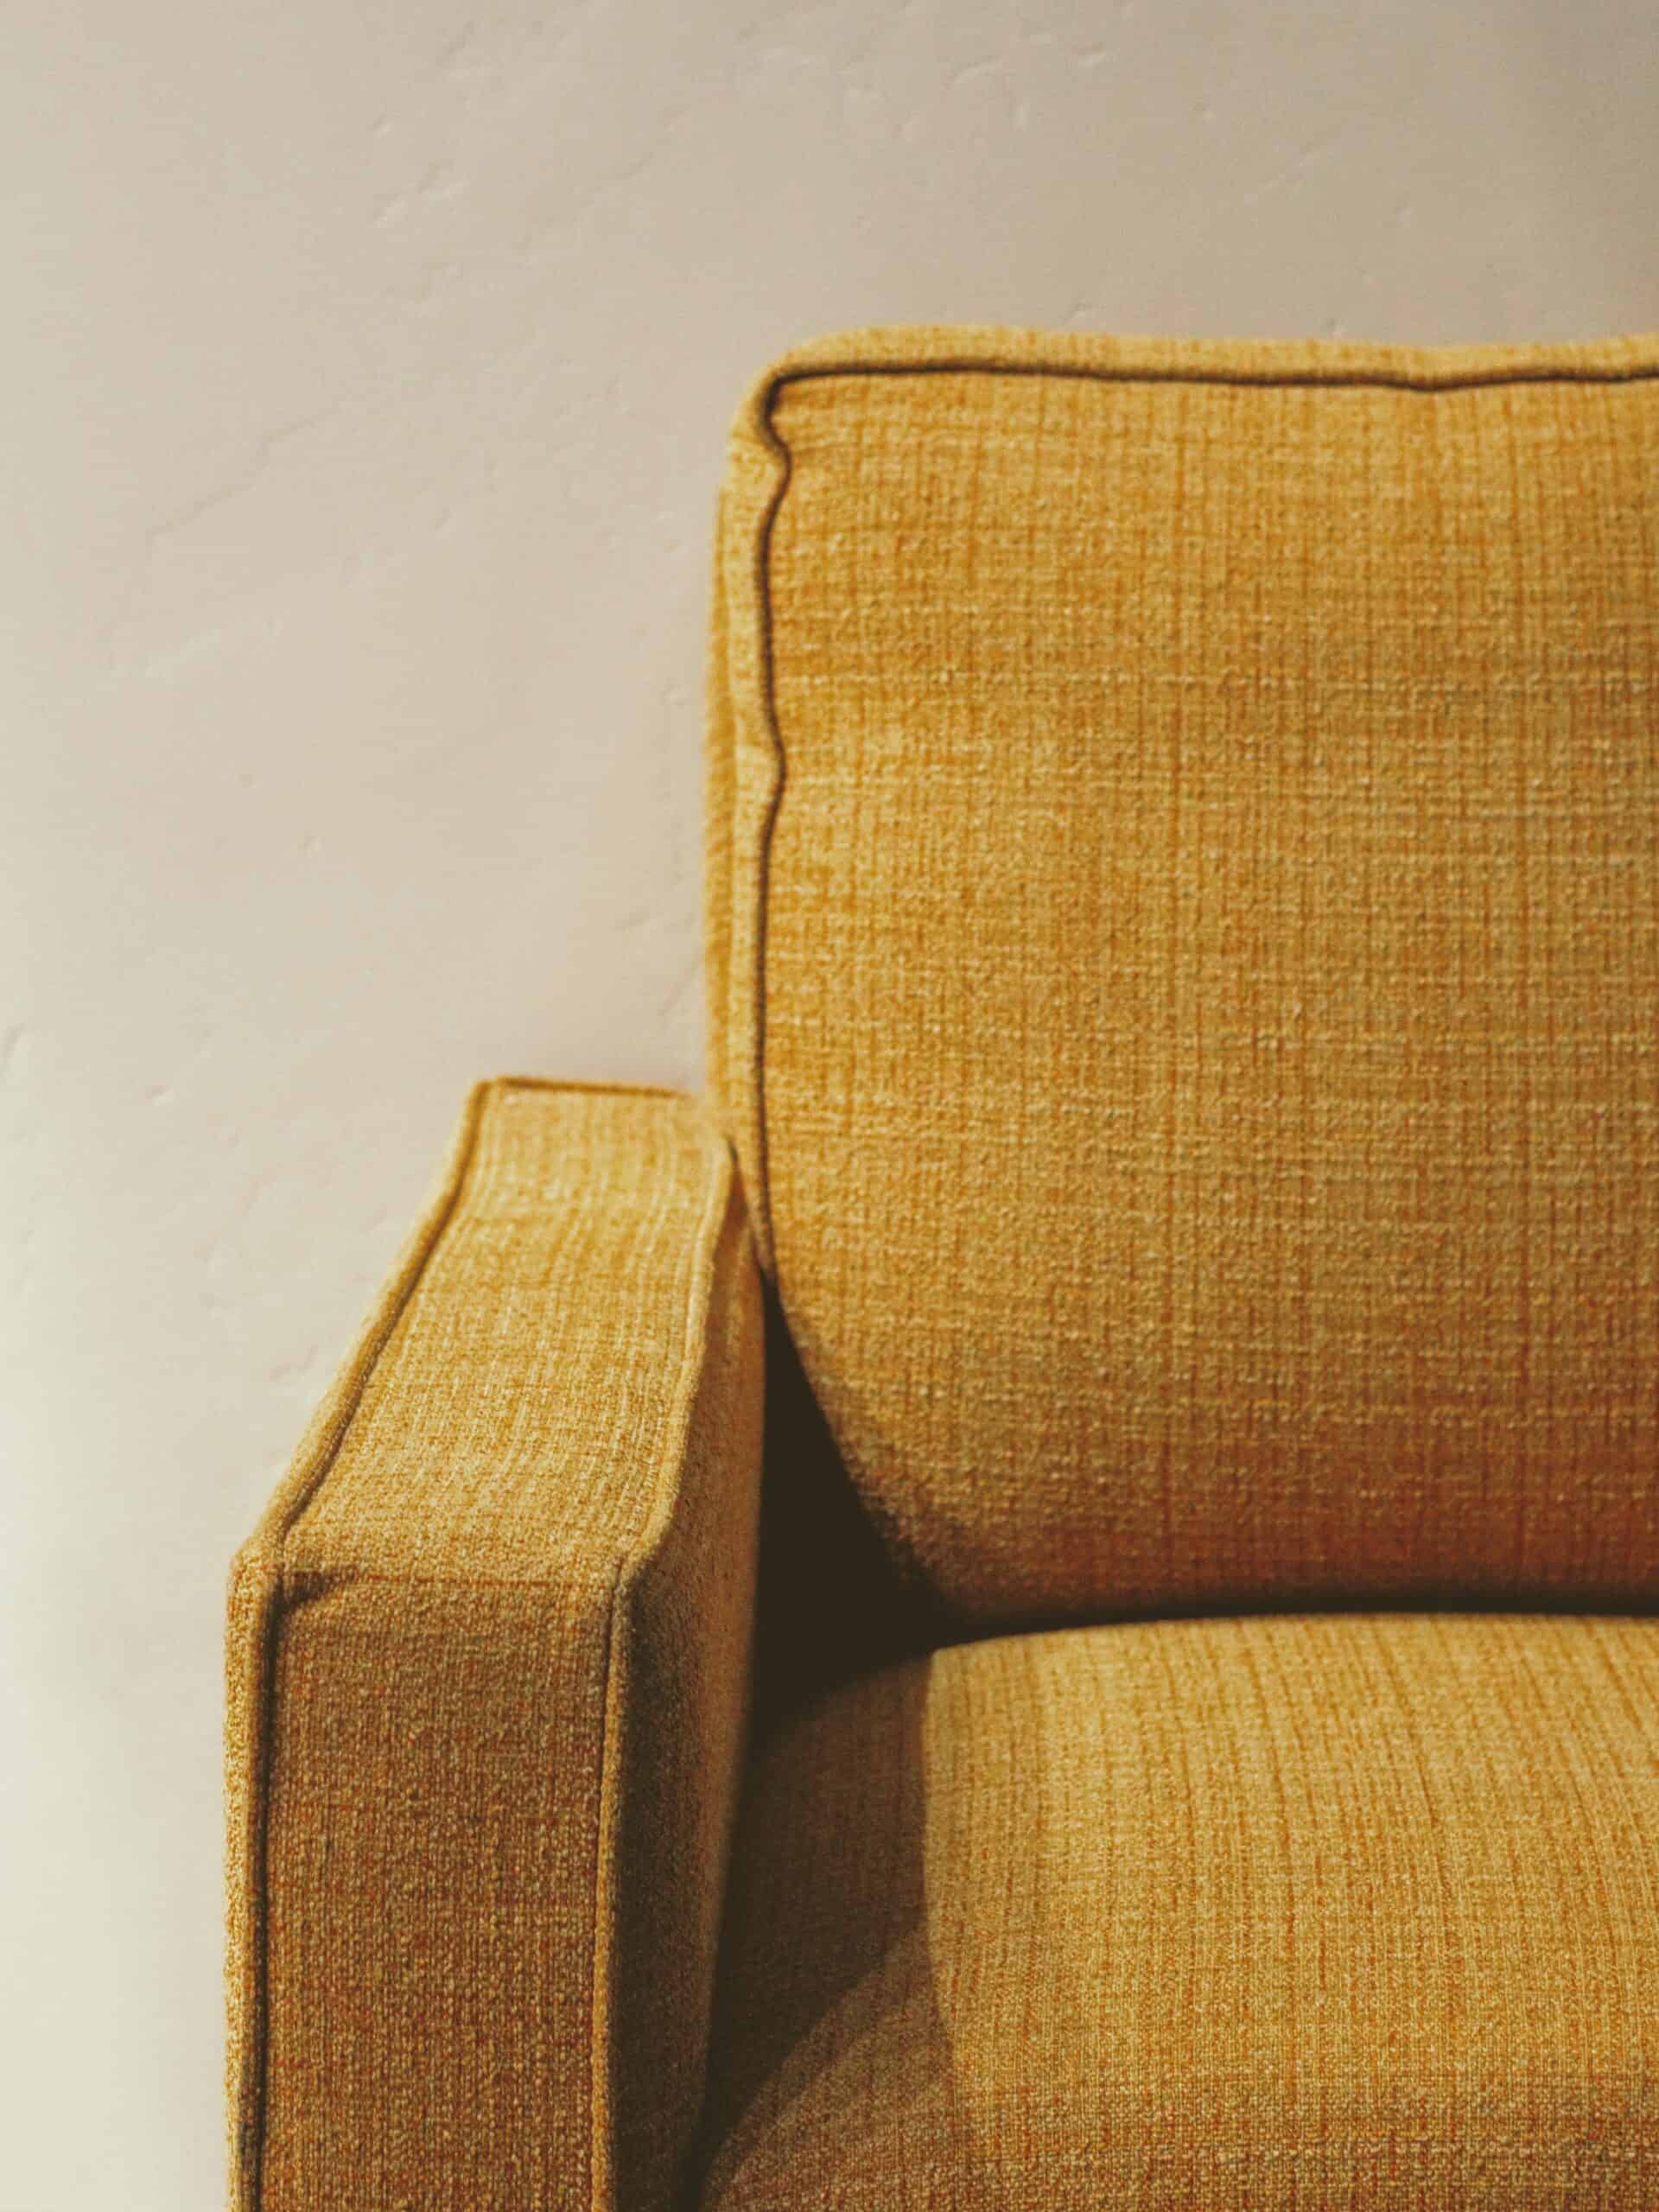 Digital Marketing For Upholstery